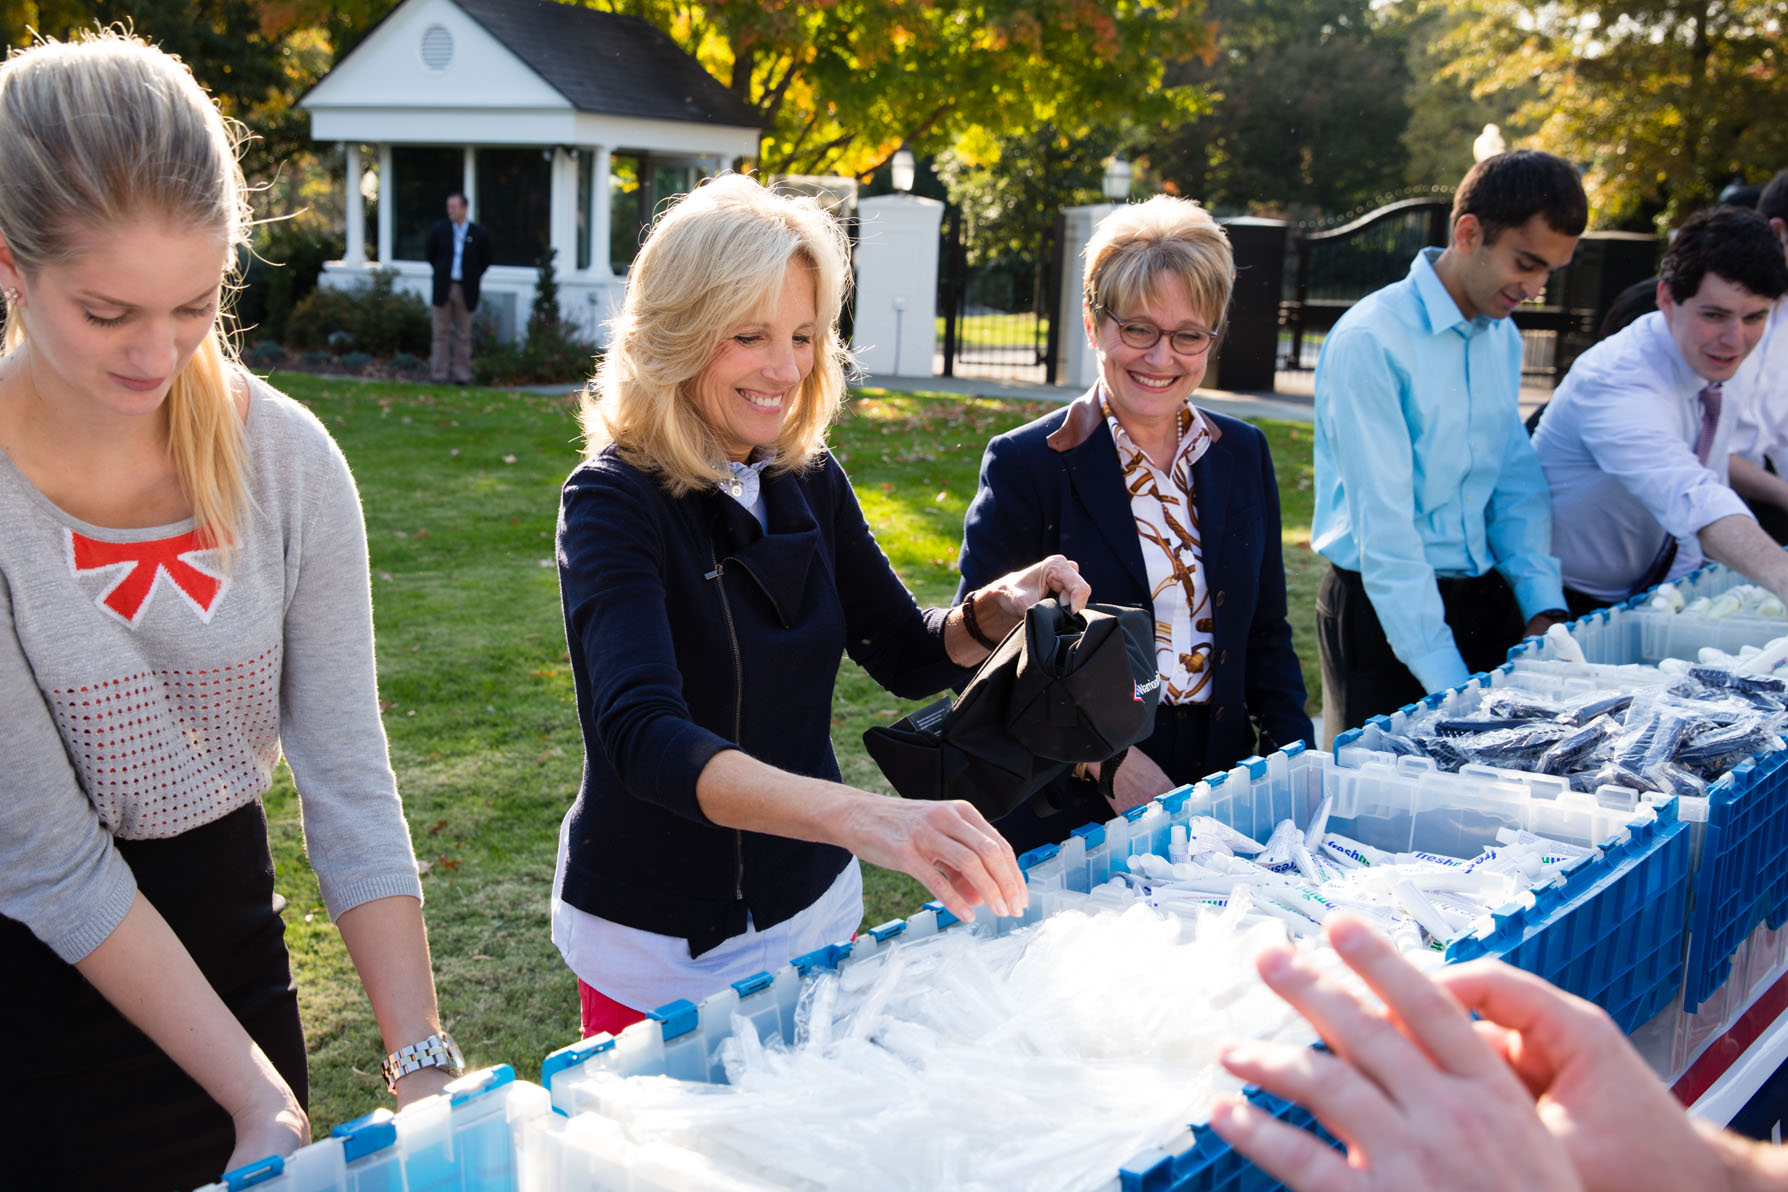 Dr. Jill Biden joins Senate Spouses, military spouses and White House volunteers to Support Recovering Troops